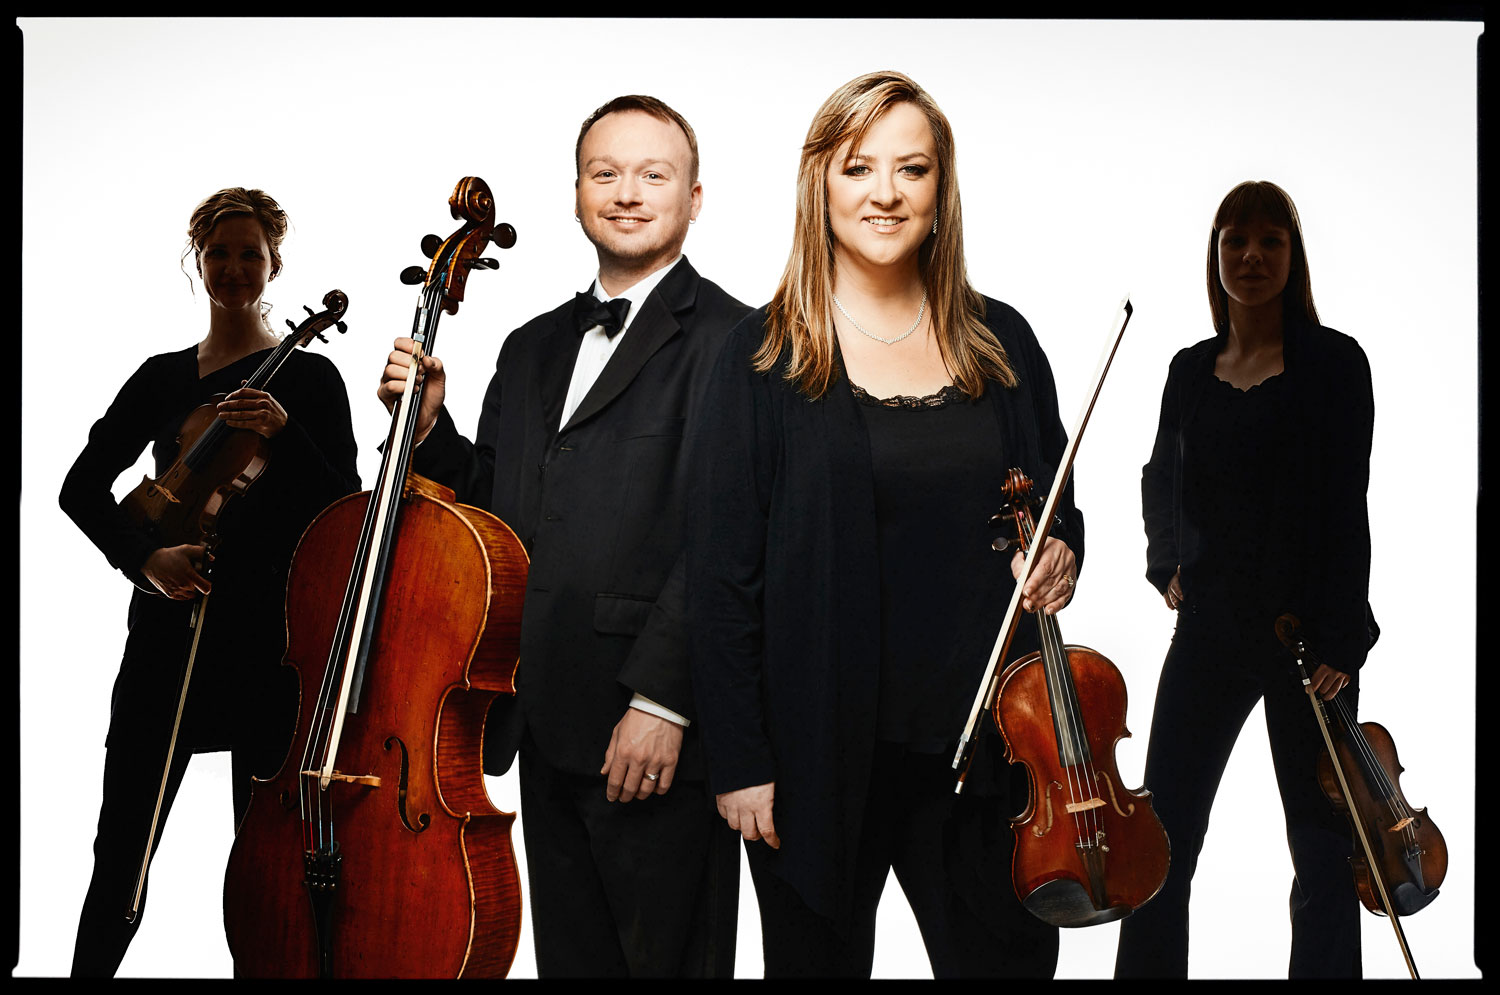 The Luminous String Quartet